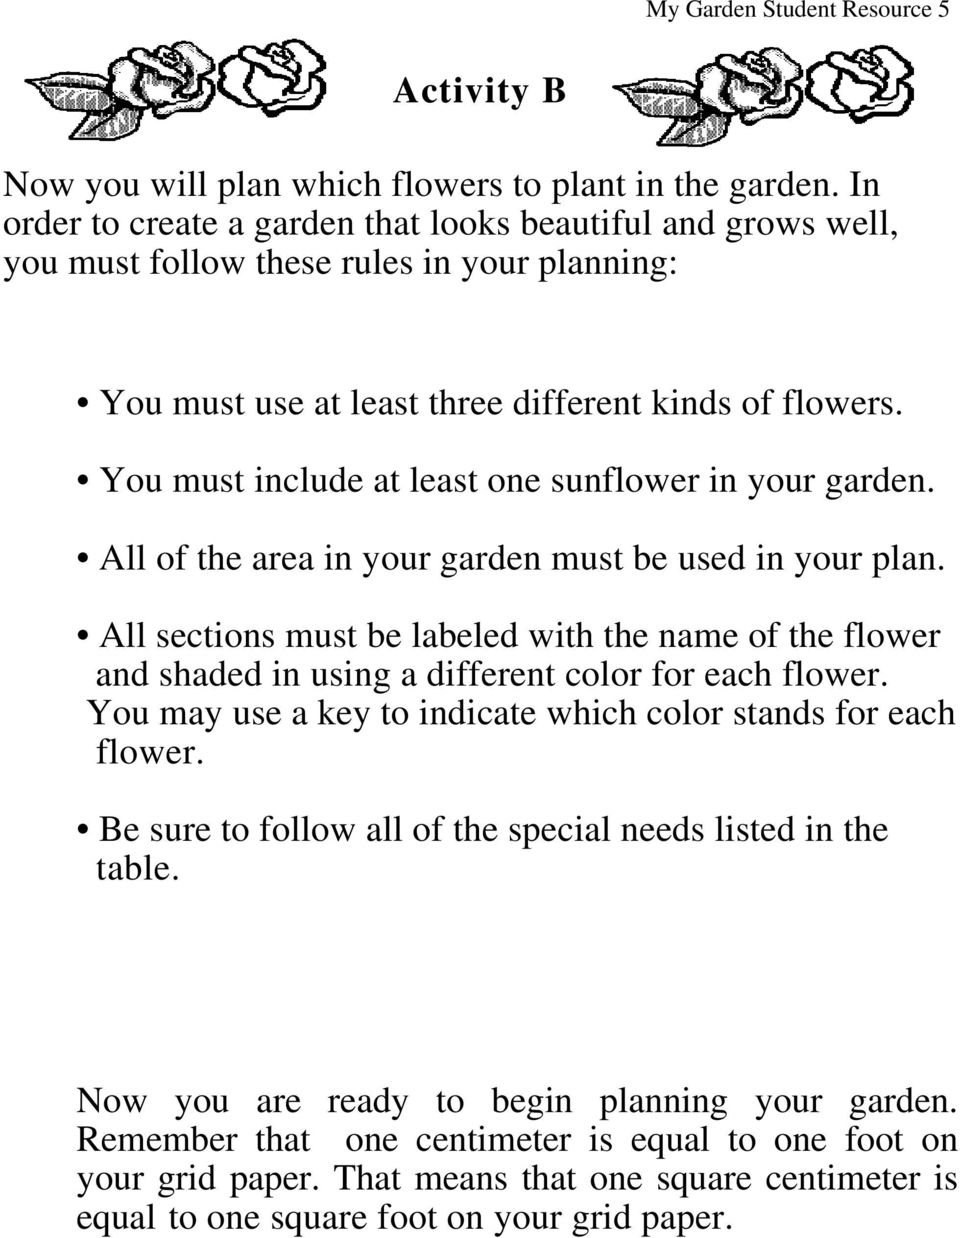 You must include at least one sunflower in your garden. All of the area in your garden must be used in your plan.